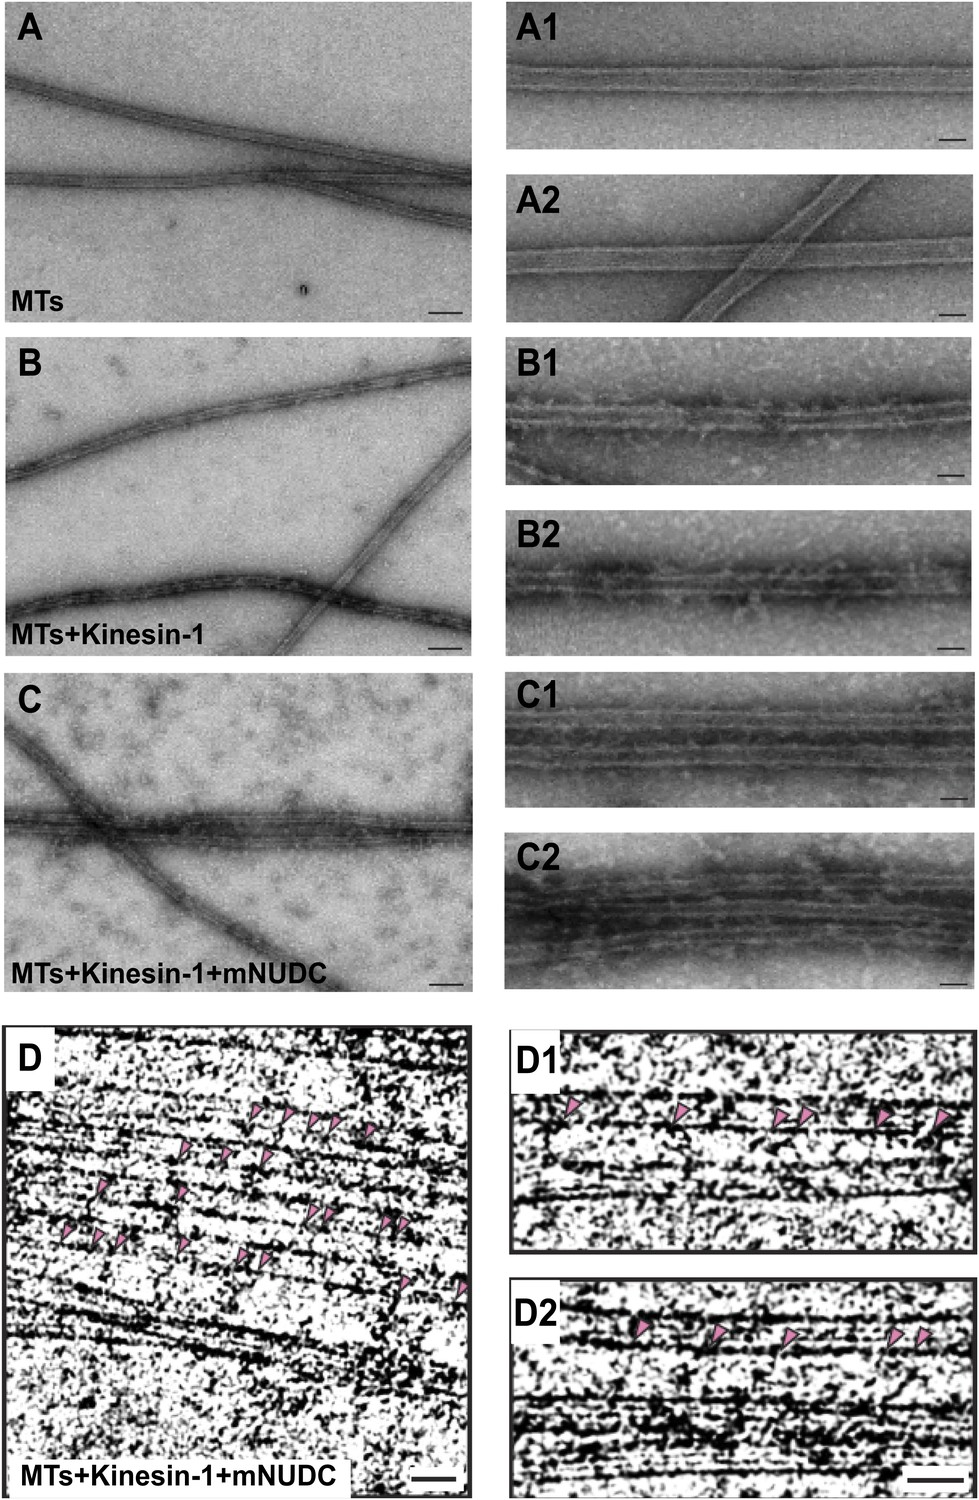 Kinesin 1 regulates dendrite microtubule polarity in purified kinesin 1 complex bundles anti parallel mts in vitro mitanshu Gallery